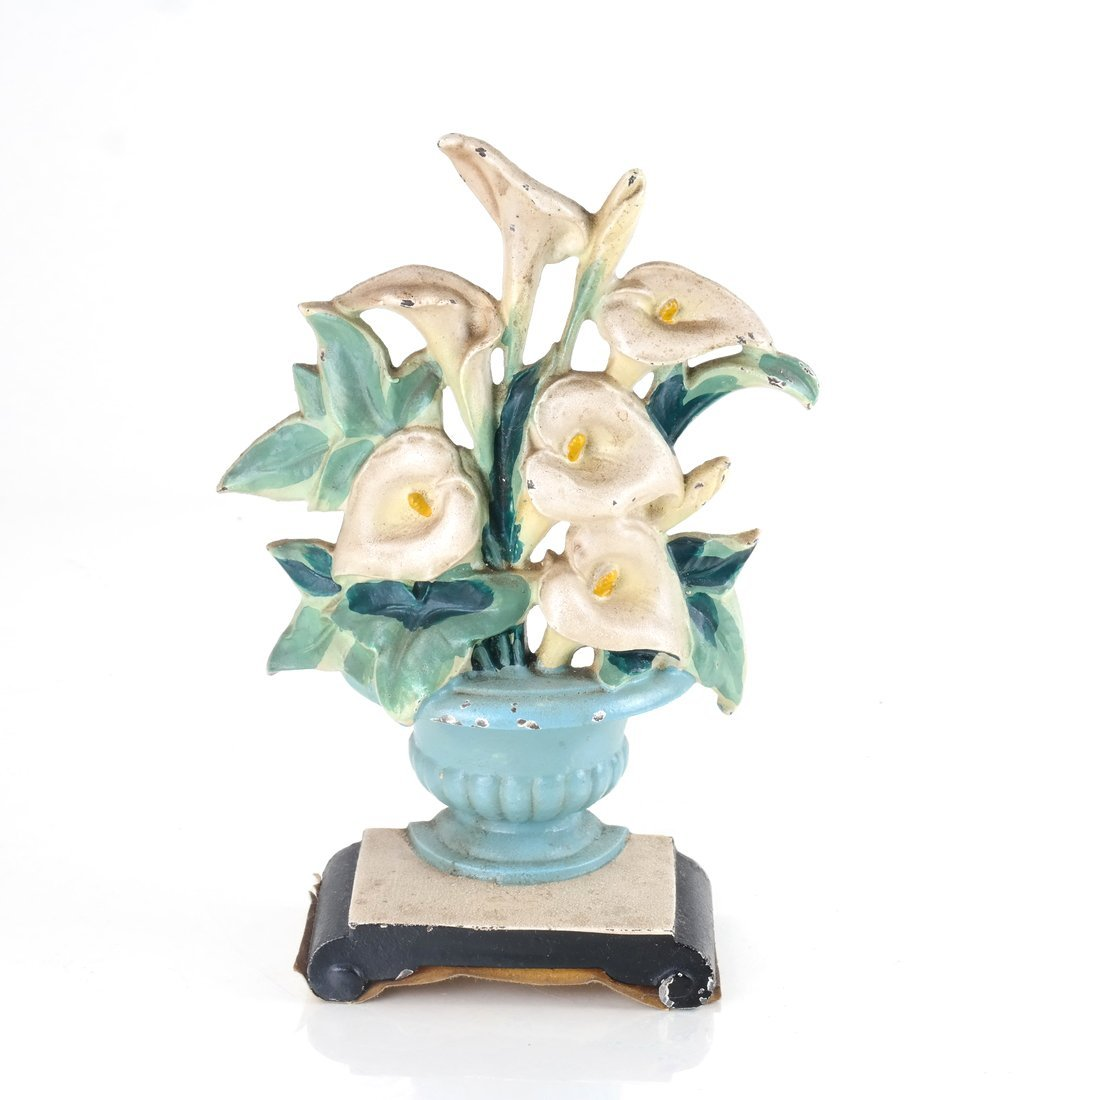 Two Identical Cast Iron Lilies in Urns Doorstops - 7